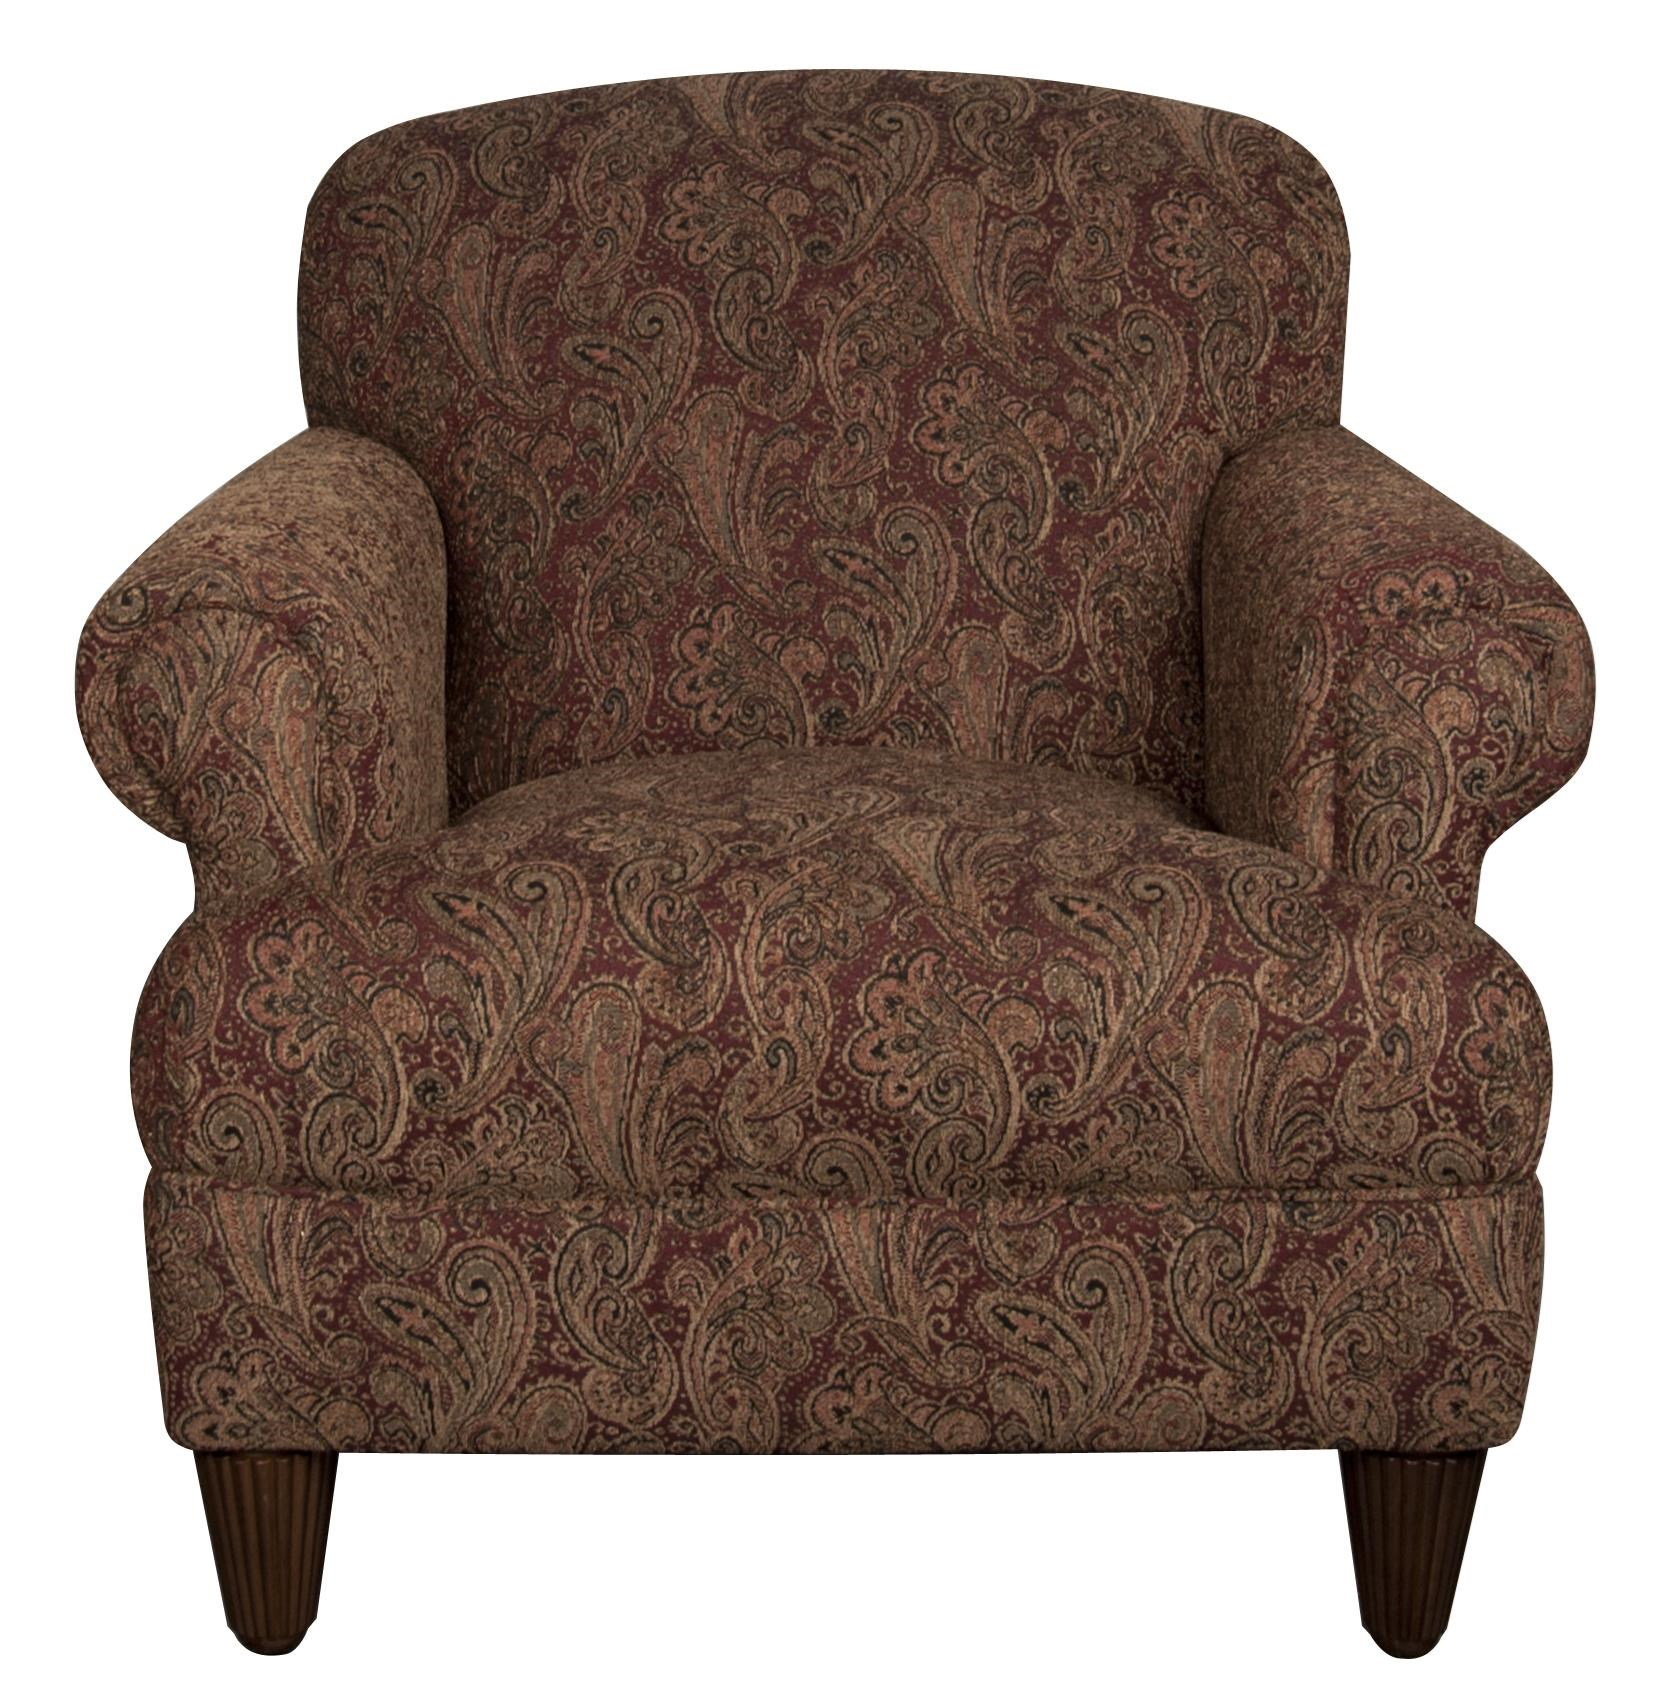 Elliston Place Marjorie Marjorie Accent Chair - Item Number: 449970832